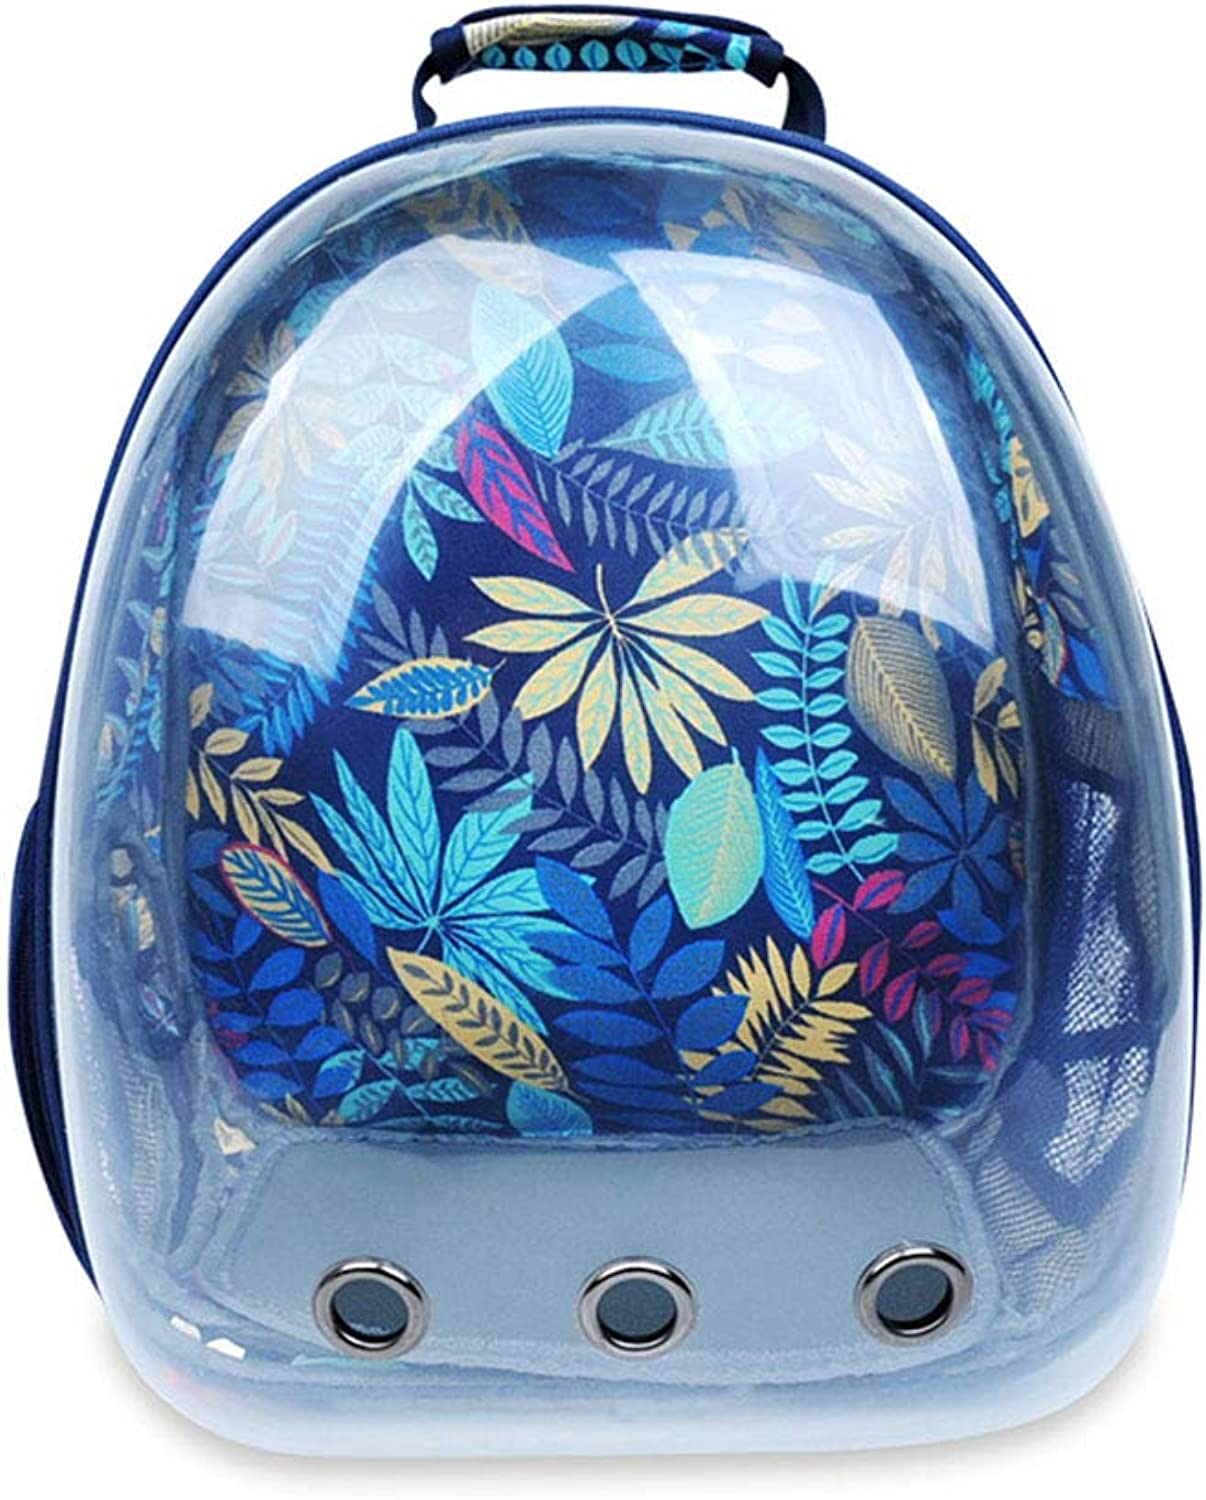 LEERAIN Pet Backpack Transparent Space Capsule Puppy Dog Package Portable Satchel Cat Bag Travel Sightseeing Breathable Outdoor,bluee